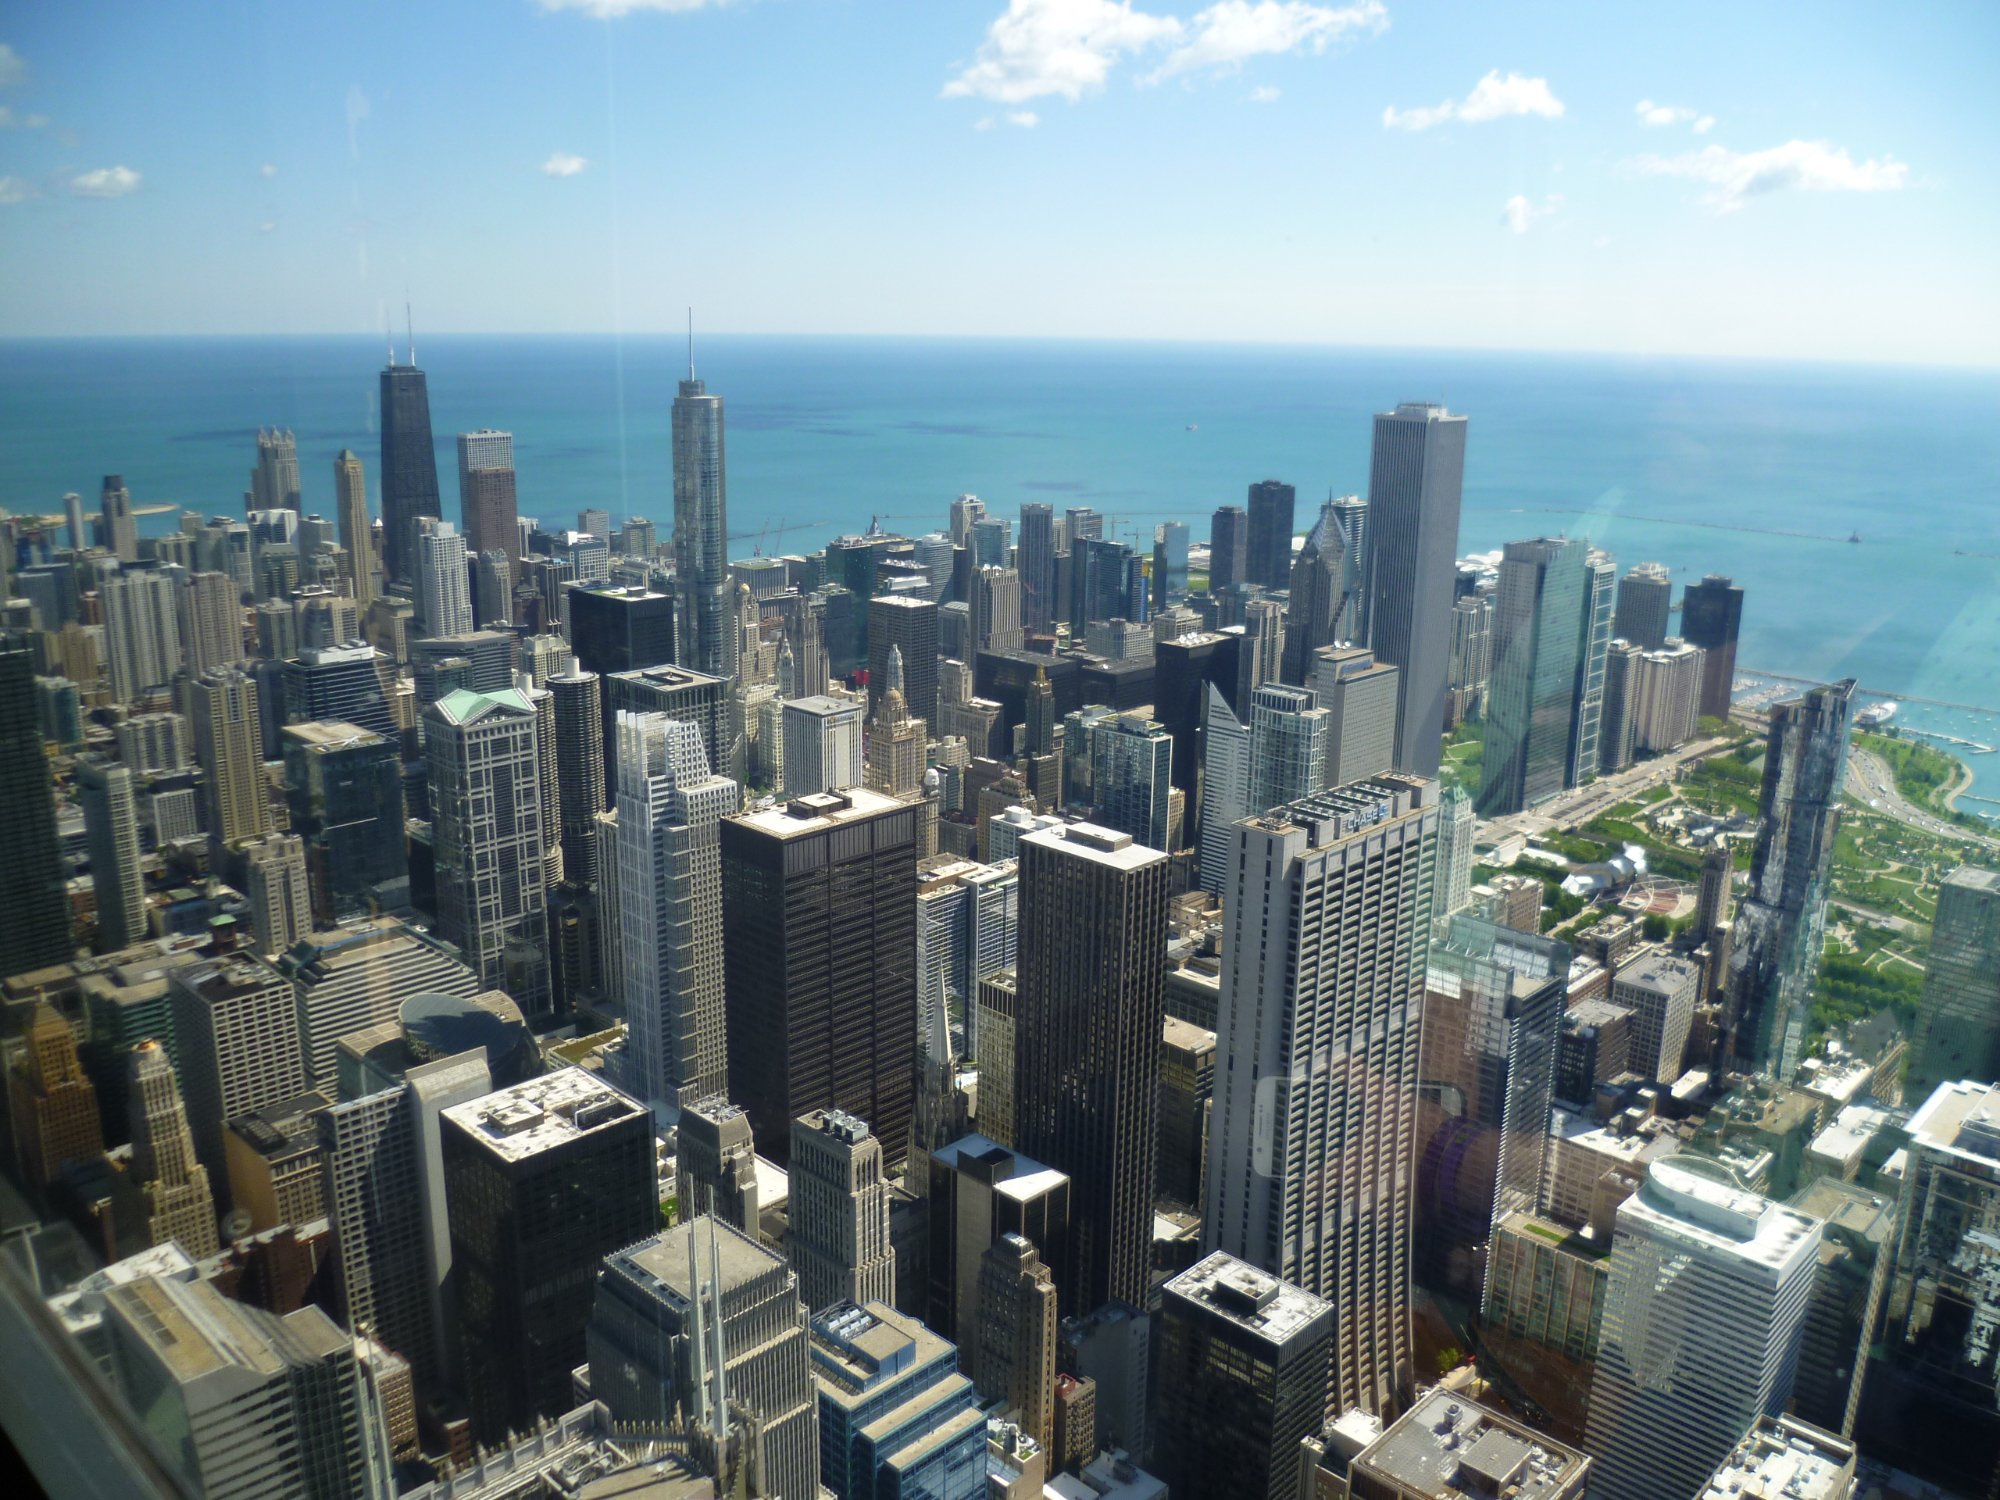 Skydeck view from Willis Tower